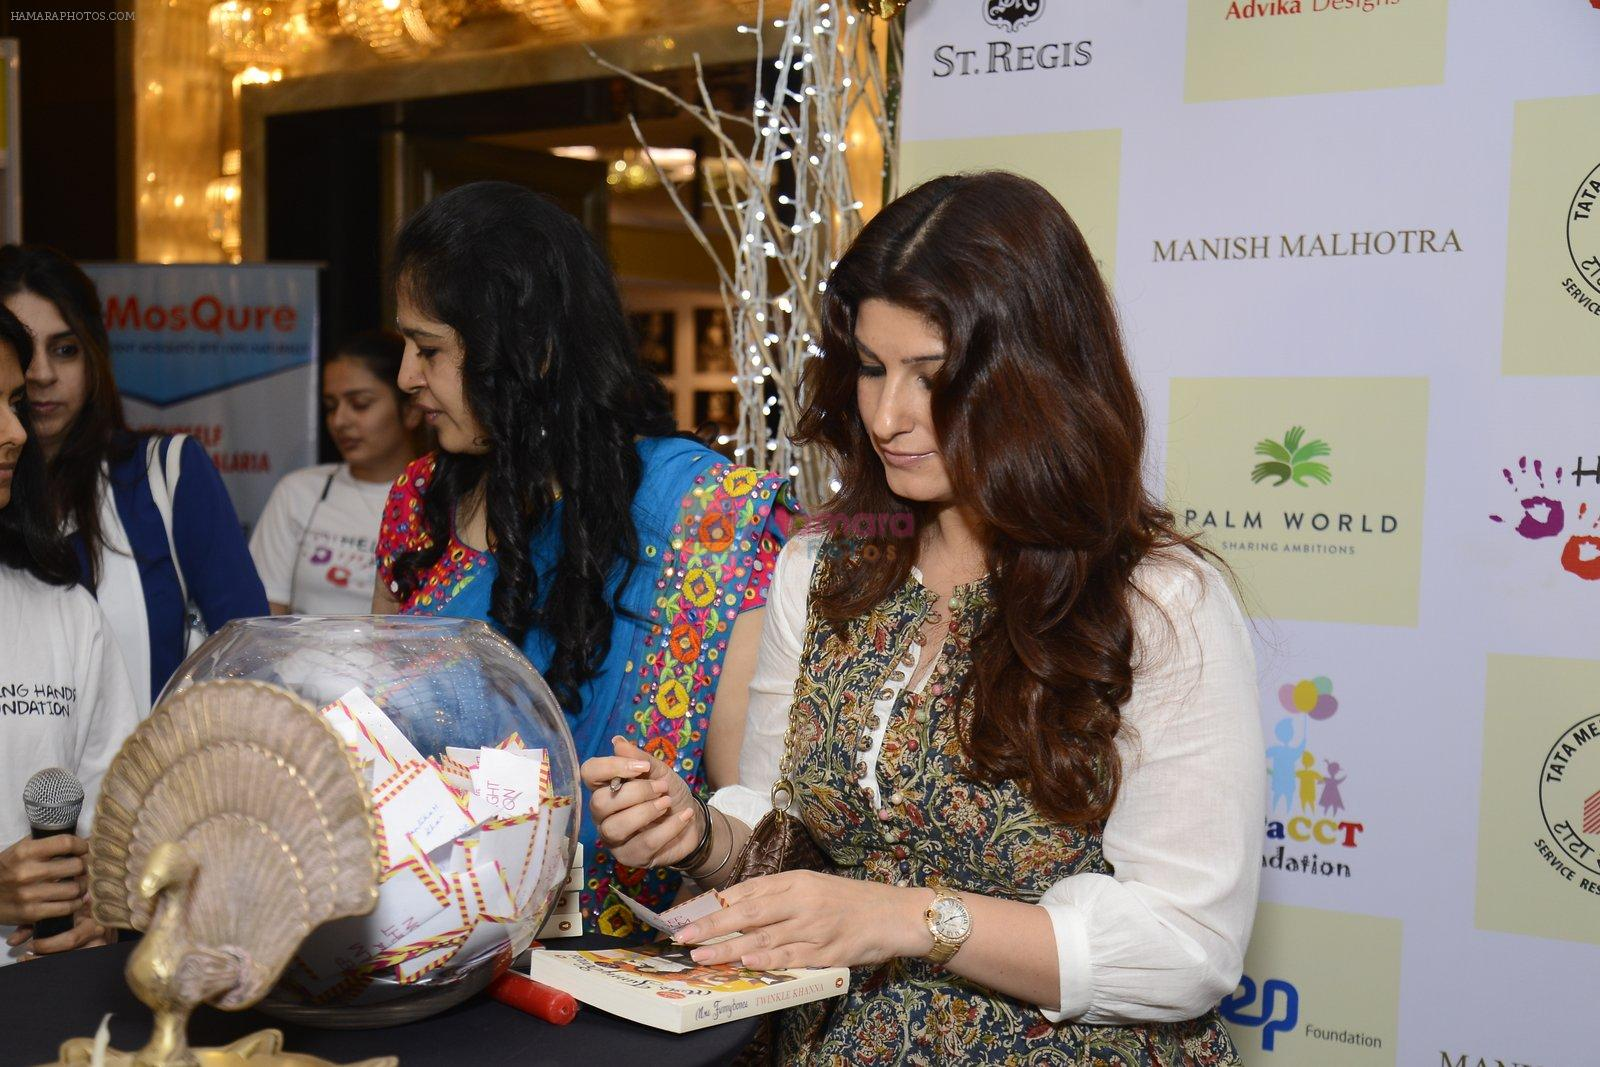 Twinkle khanna inaugurate helping hands exhibition in st regis on 13th Oct 2016